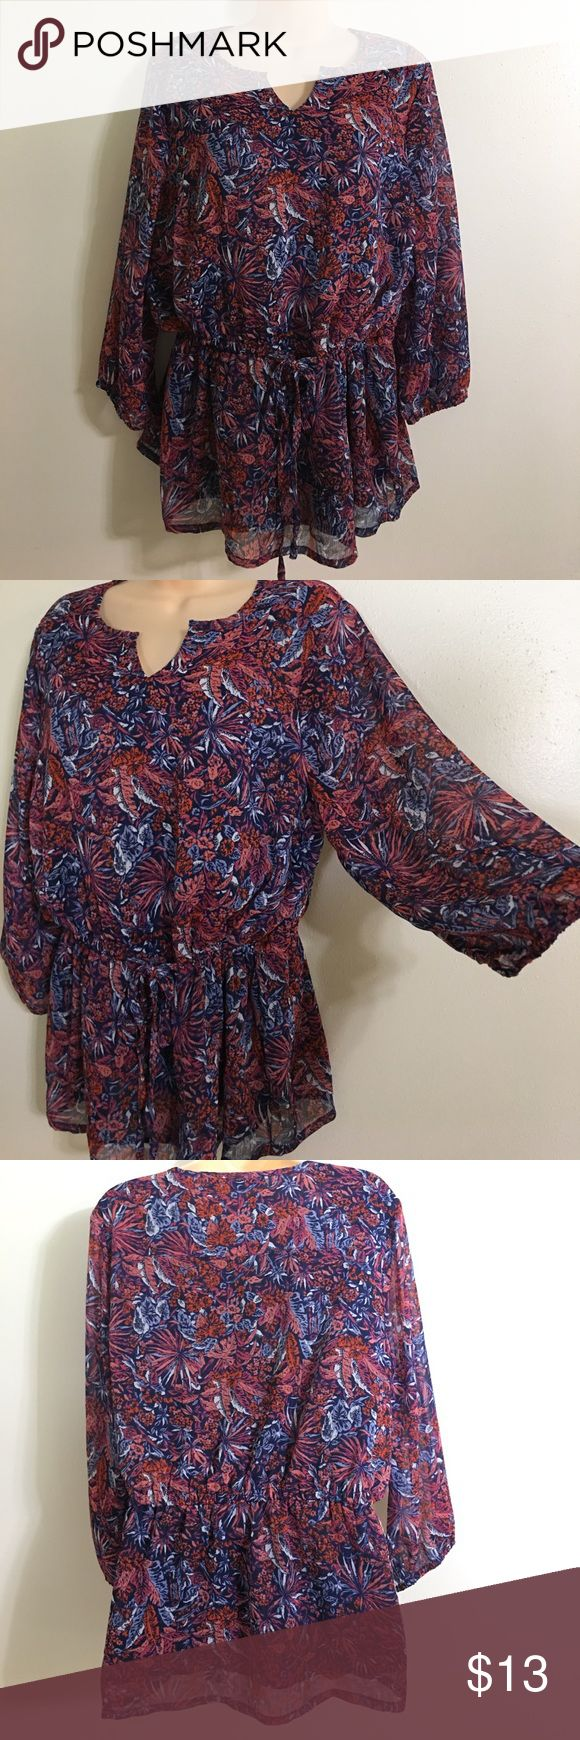 LIZ Claiborne NY bohemian Top drawstring Waist❤️ LIZ Claiborne New York bohemian Top with drawstring Waist . Great fit and trendy style! Excellent used condition ❤️ Liz Claiborne Tops Blouses